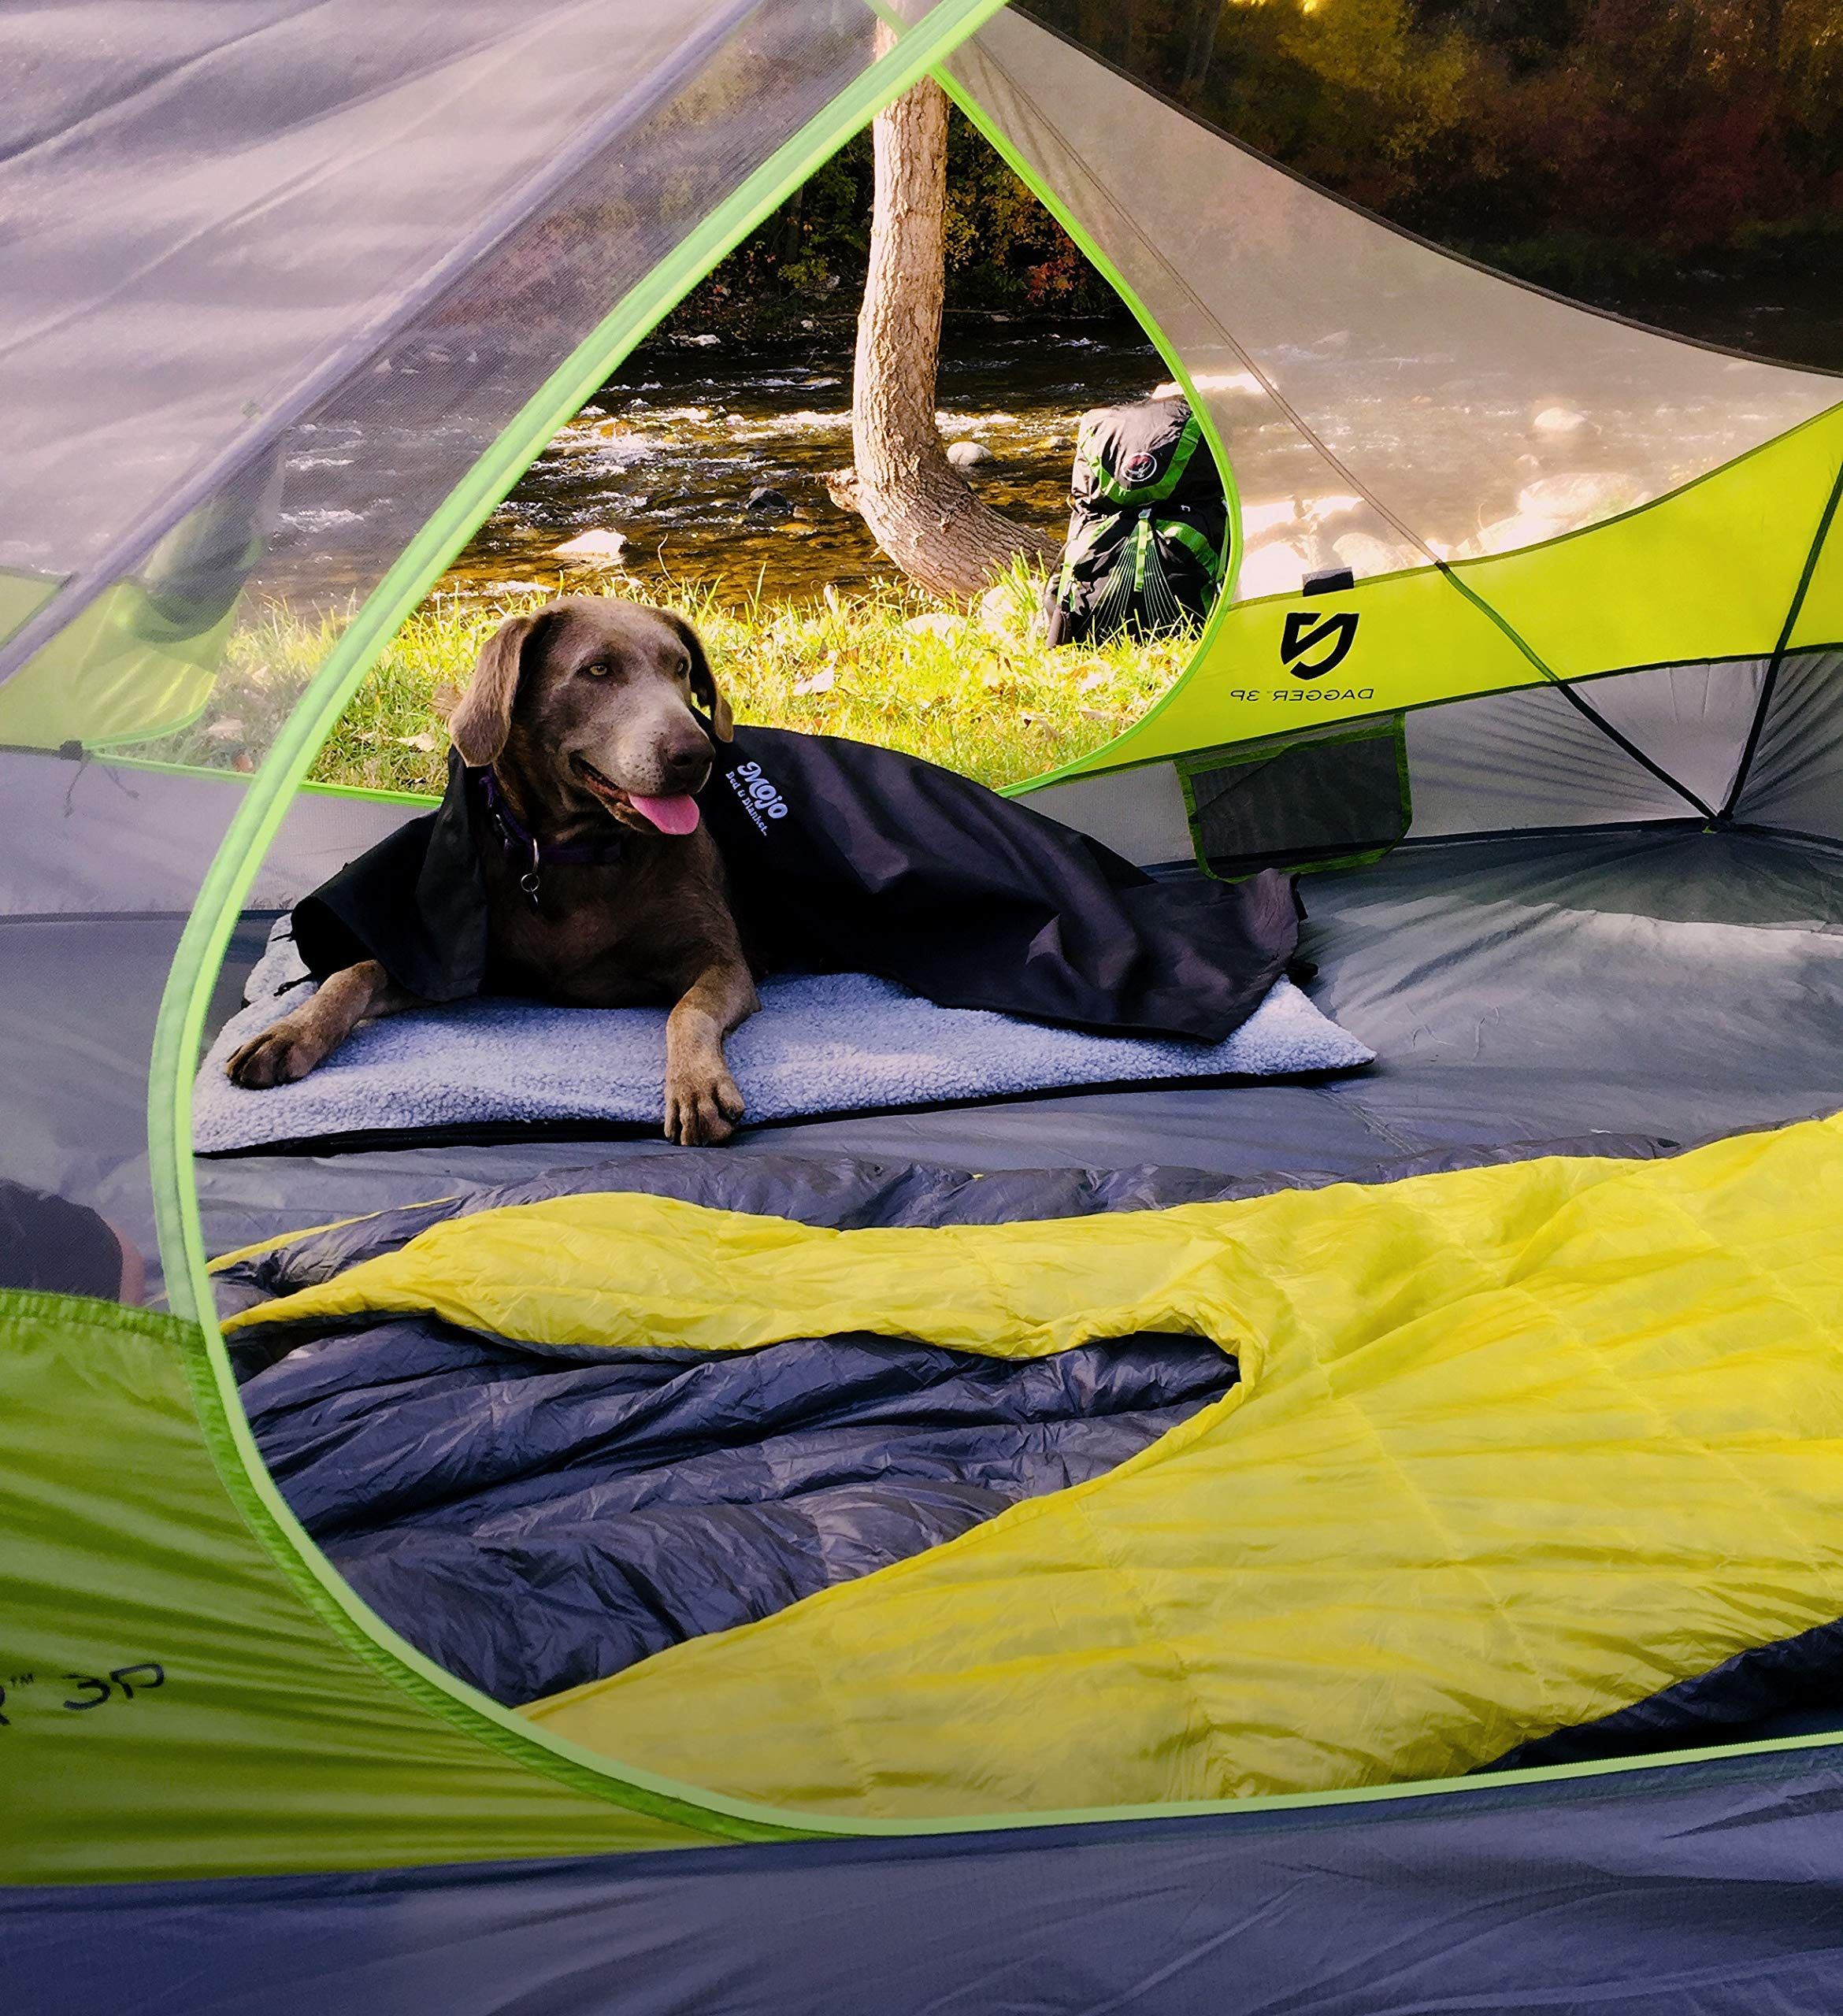 Mojo Portable Inflatable Dog Travel Bed Great For Camping Backpacking Hiking Car Seat For All Outdoor Dog Activitie Dog Travel Bed Outdoor Dog Dog Travel